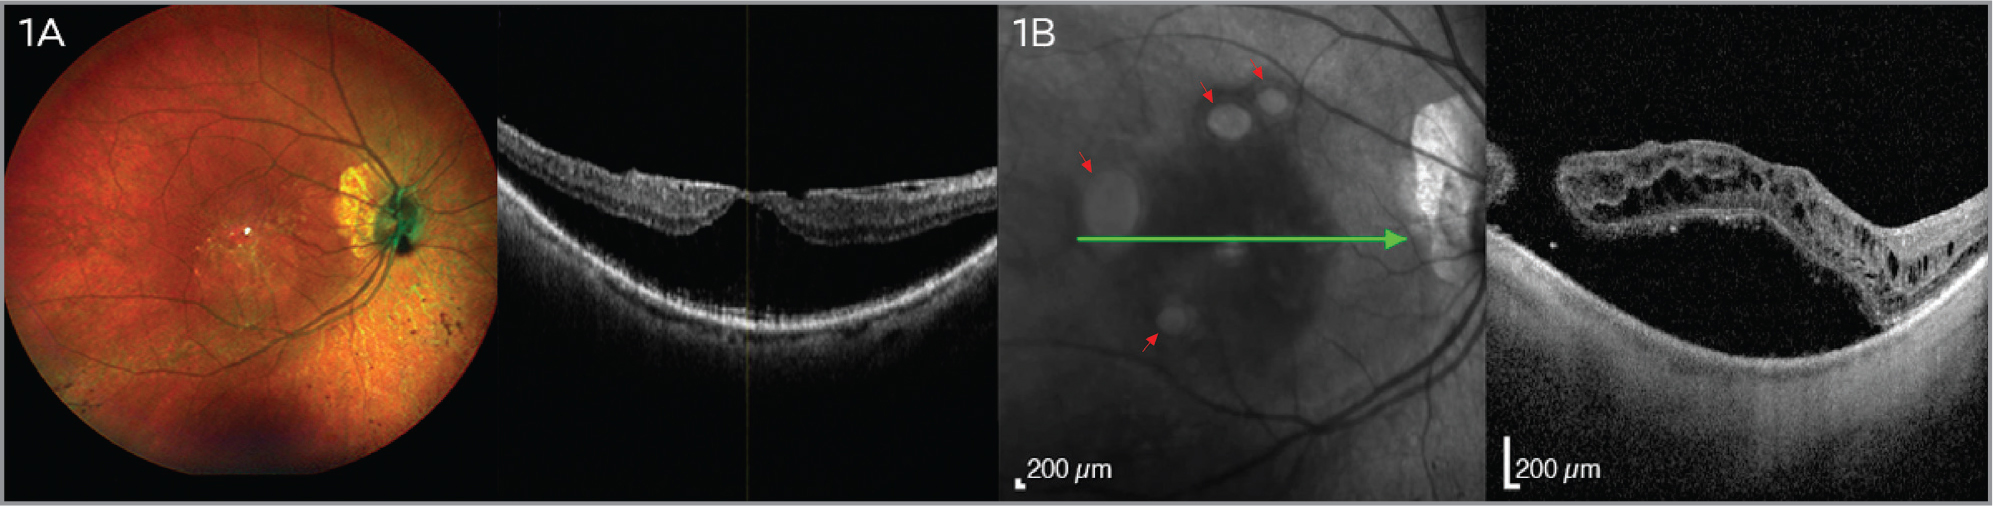 (A) At presentation, multicolor retinography in the right eye illustrates tessellated fundus with epiretinal membrane and in macular optical coherence tomography (OCT). (B) After uneventful pars plana vitrectomy, OCT shows four eccentric macular holes (red arrows) with retinal detachment.